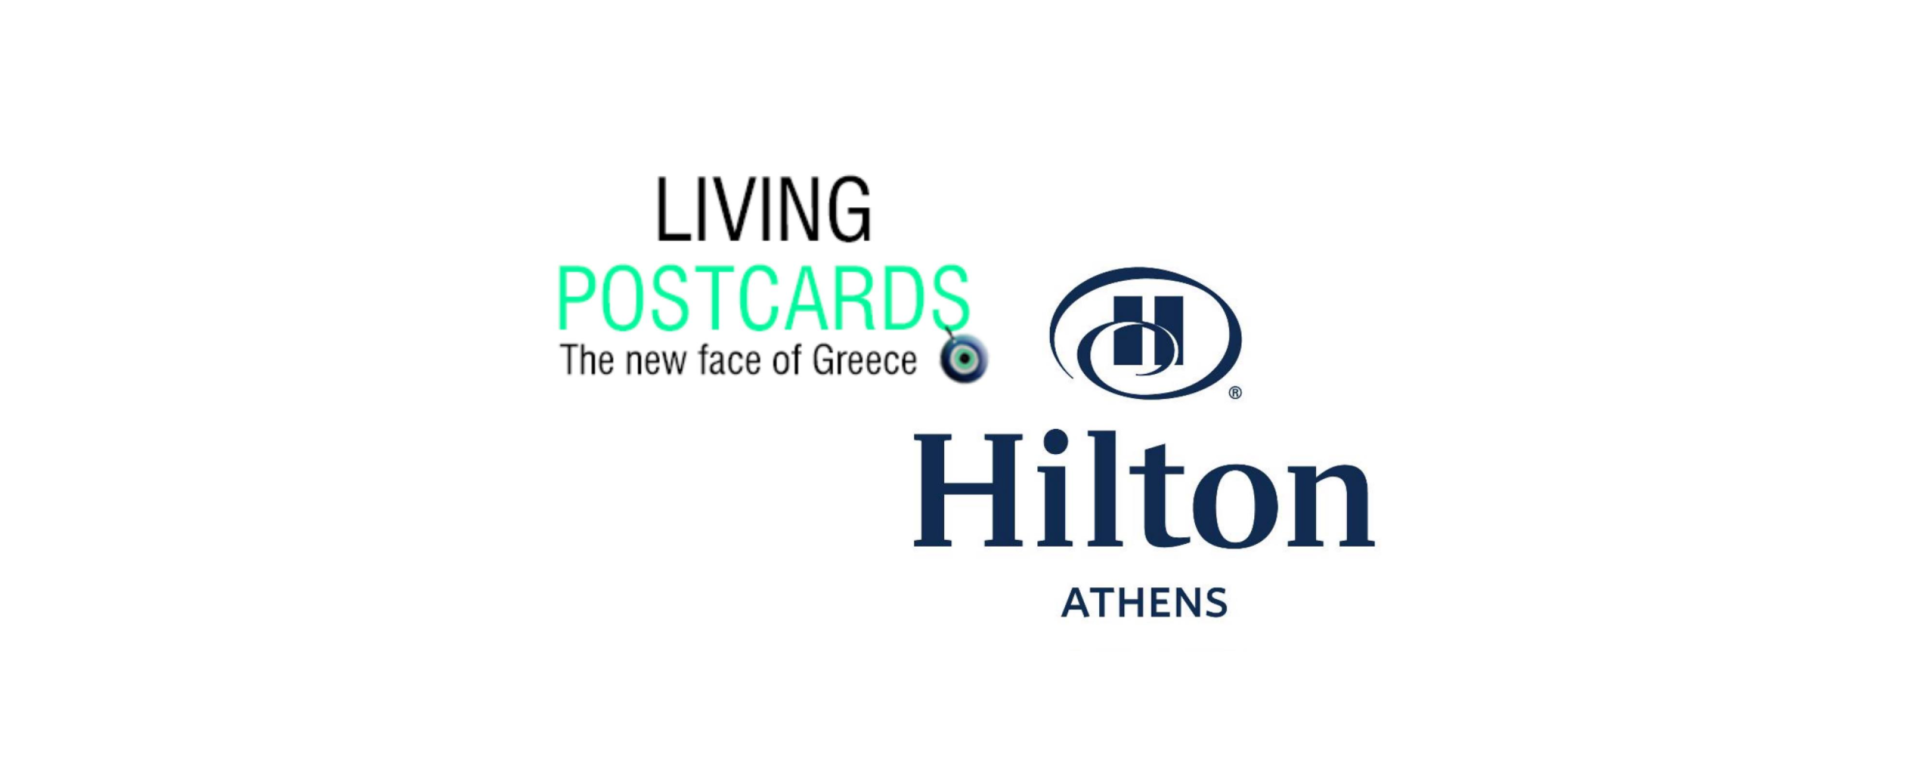 Living Postcards Event at Money Show on 8 January 2018